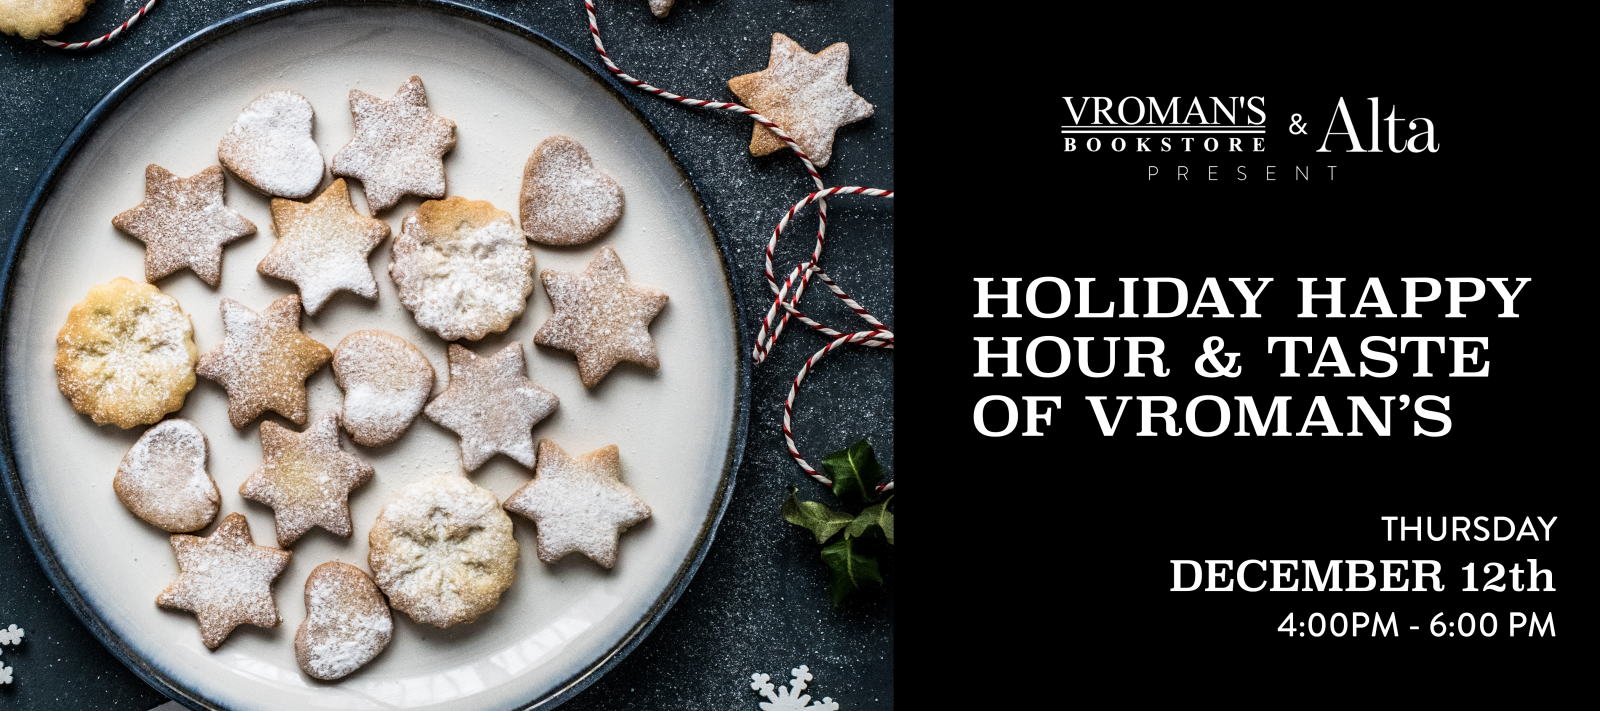 Holiday Happy Hour & Taste of Vroman's Thursday December 12 from 4-6pm